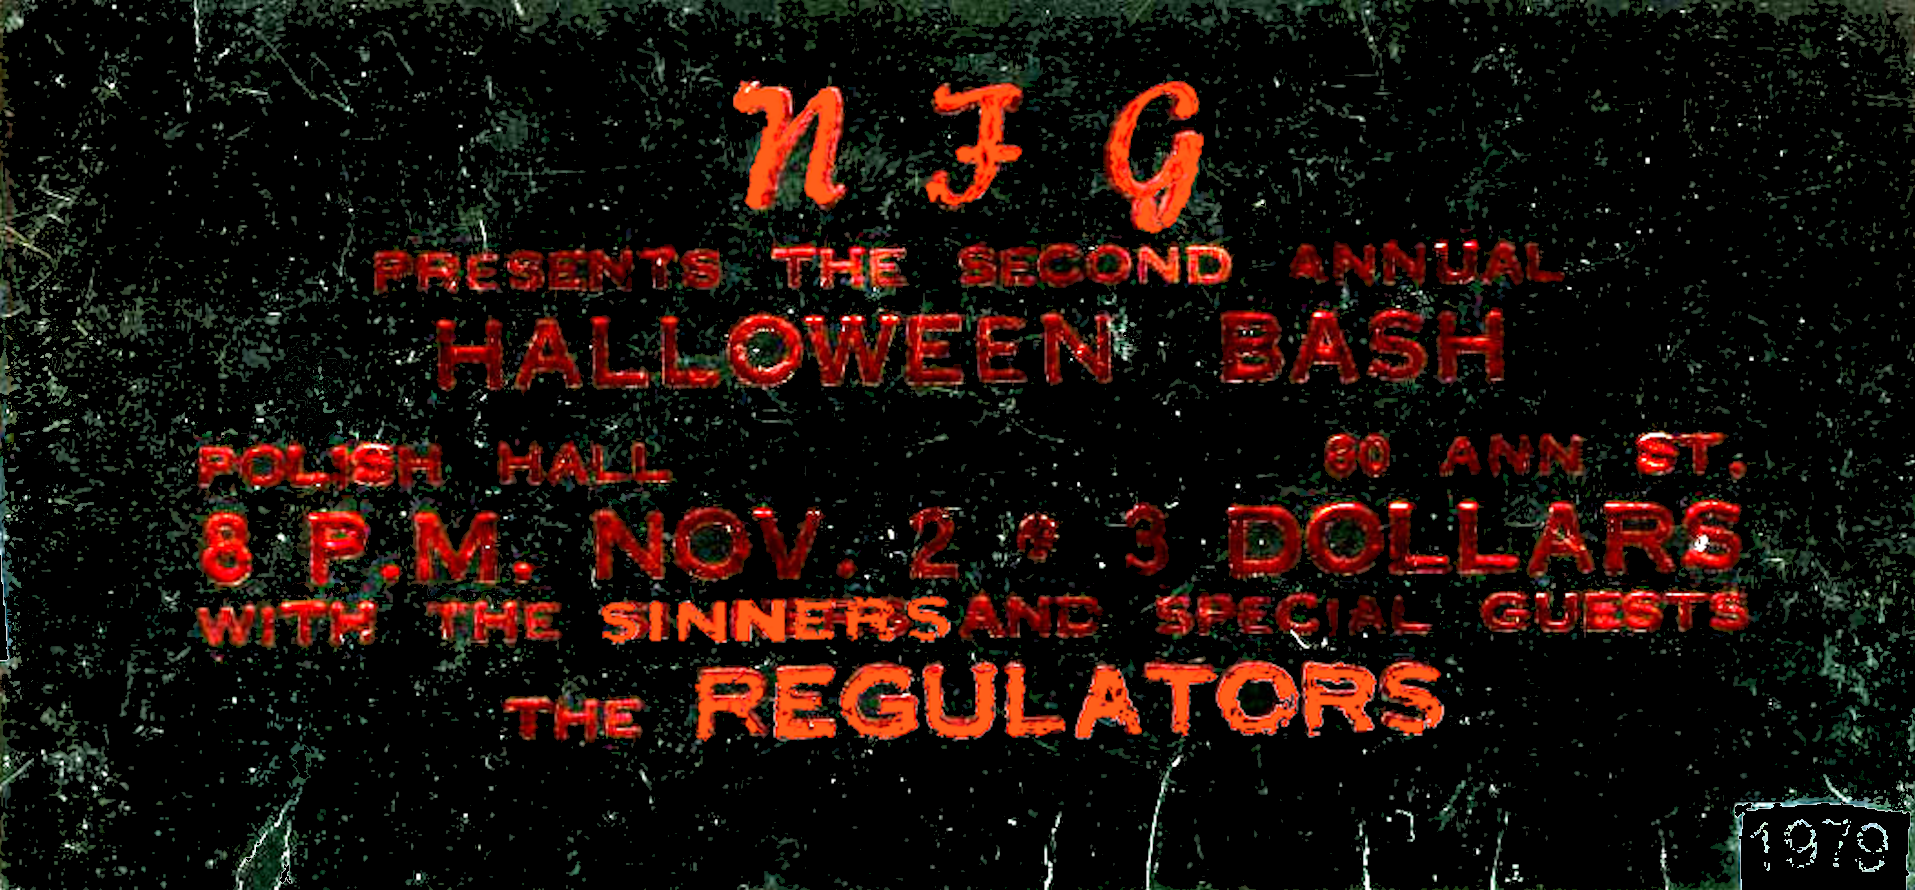 NFG Regulators Sinners Polish Hall London Ontario November 2 1979 mylifeinconcert.com